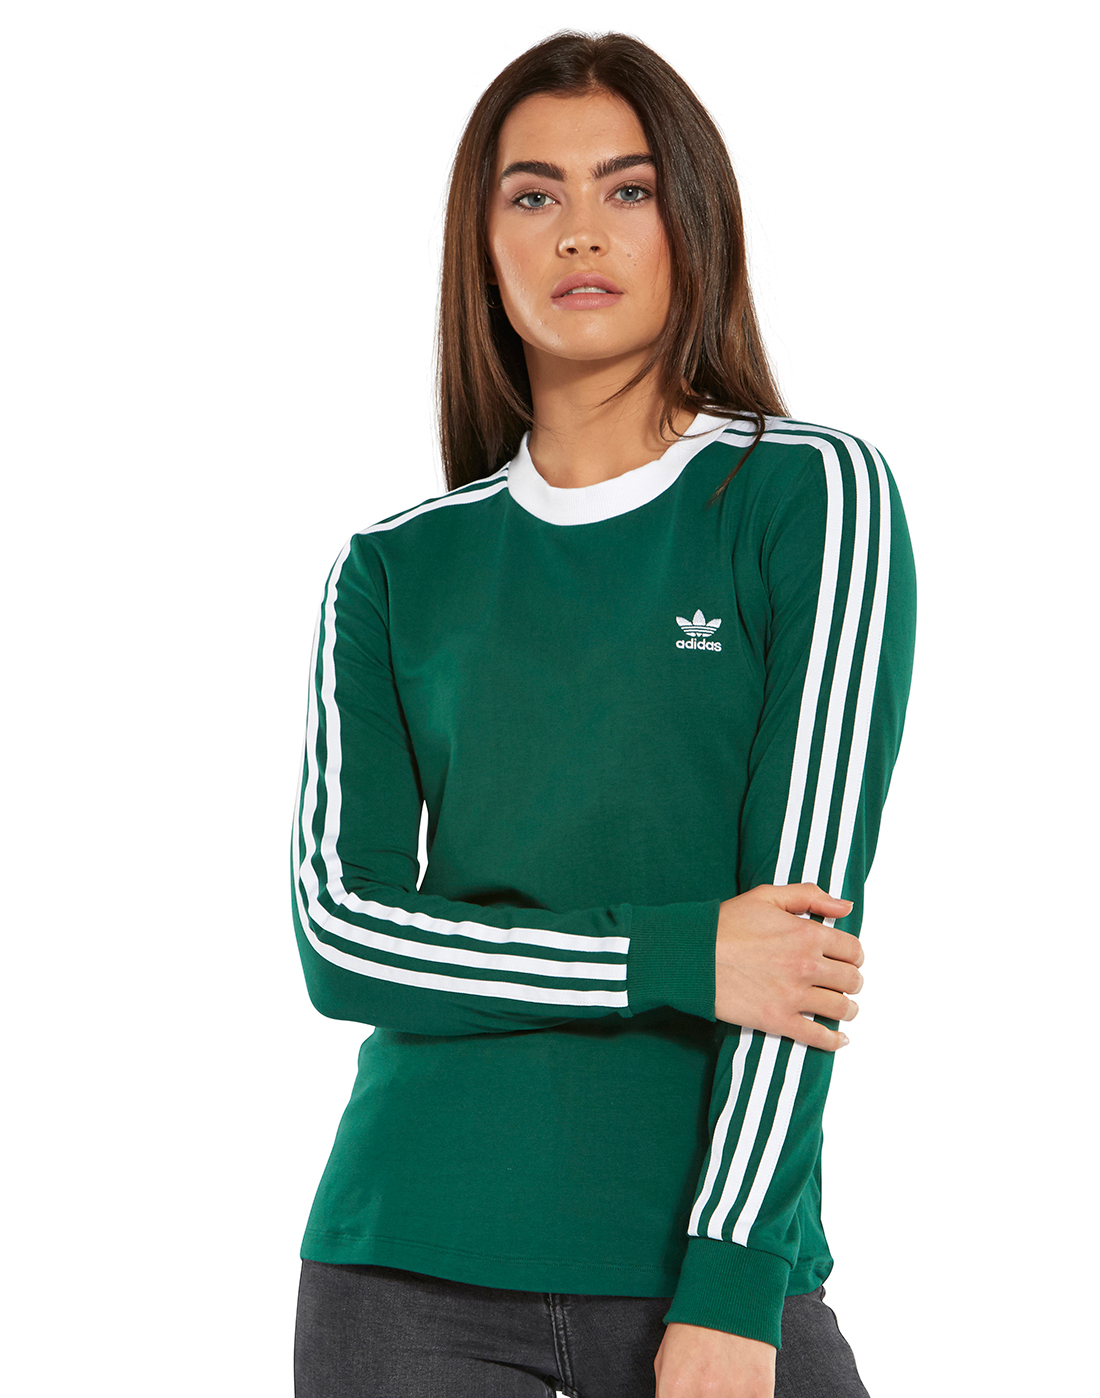 f5ca9ab157fc0 Women's Green adidas Originals Long Sleeve Top | Life Style Sports